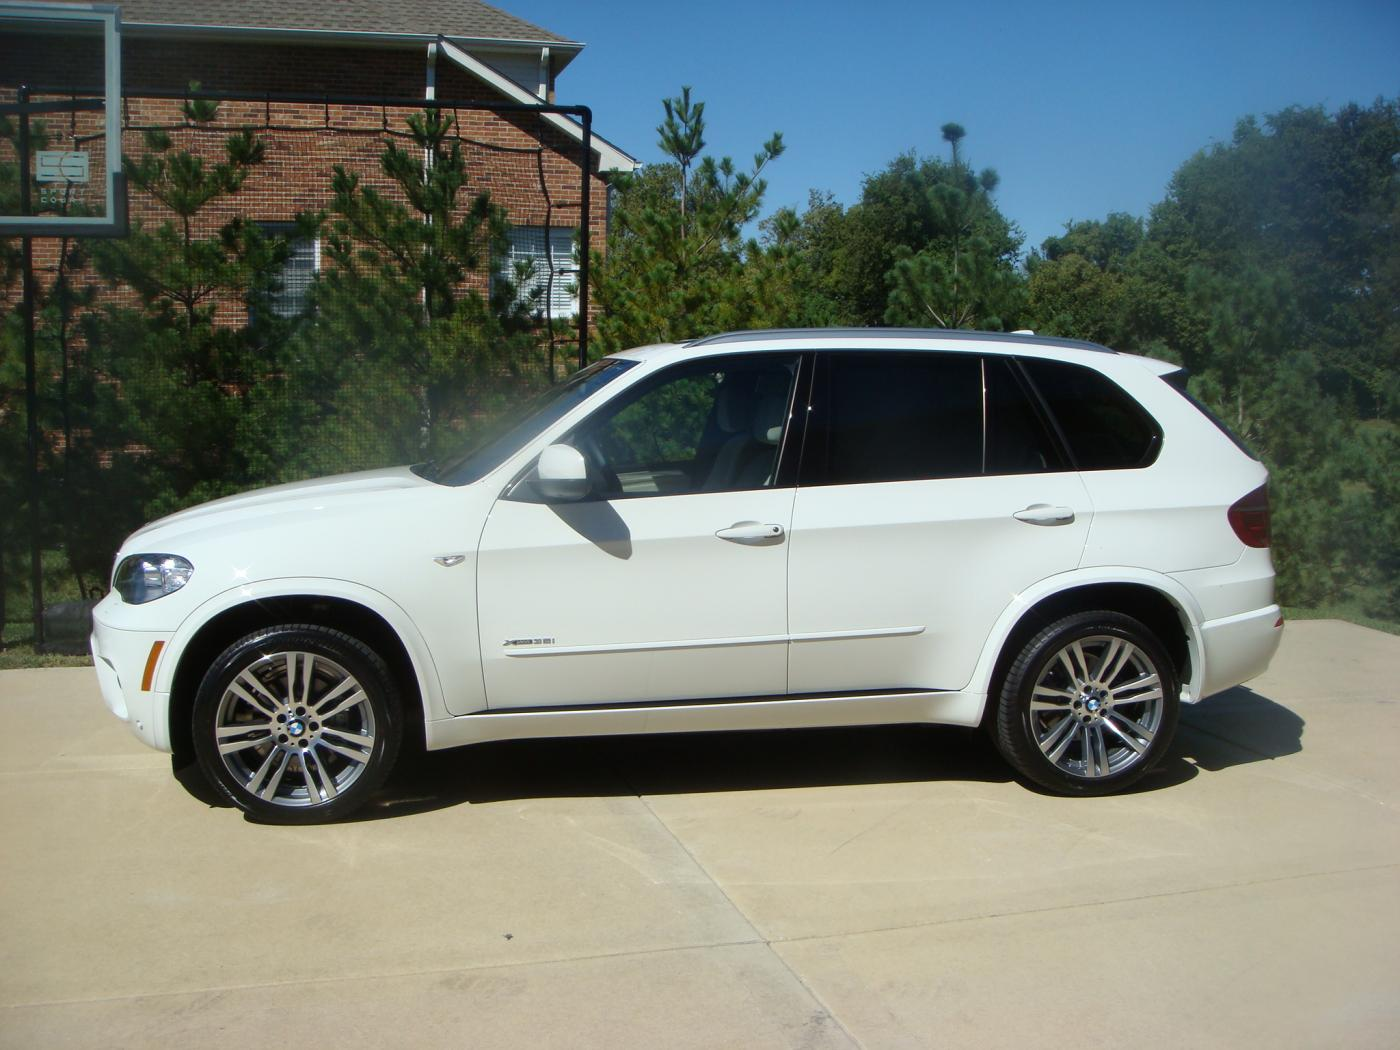 2011 X5 M Package And X6 With New 21 S Wheel Spacers Pic Included Xoutpost Com